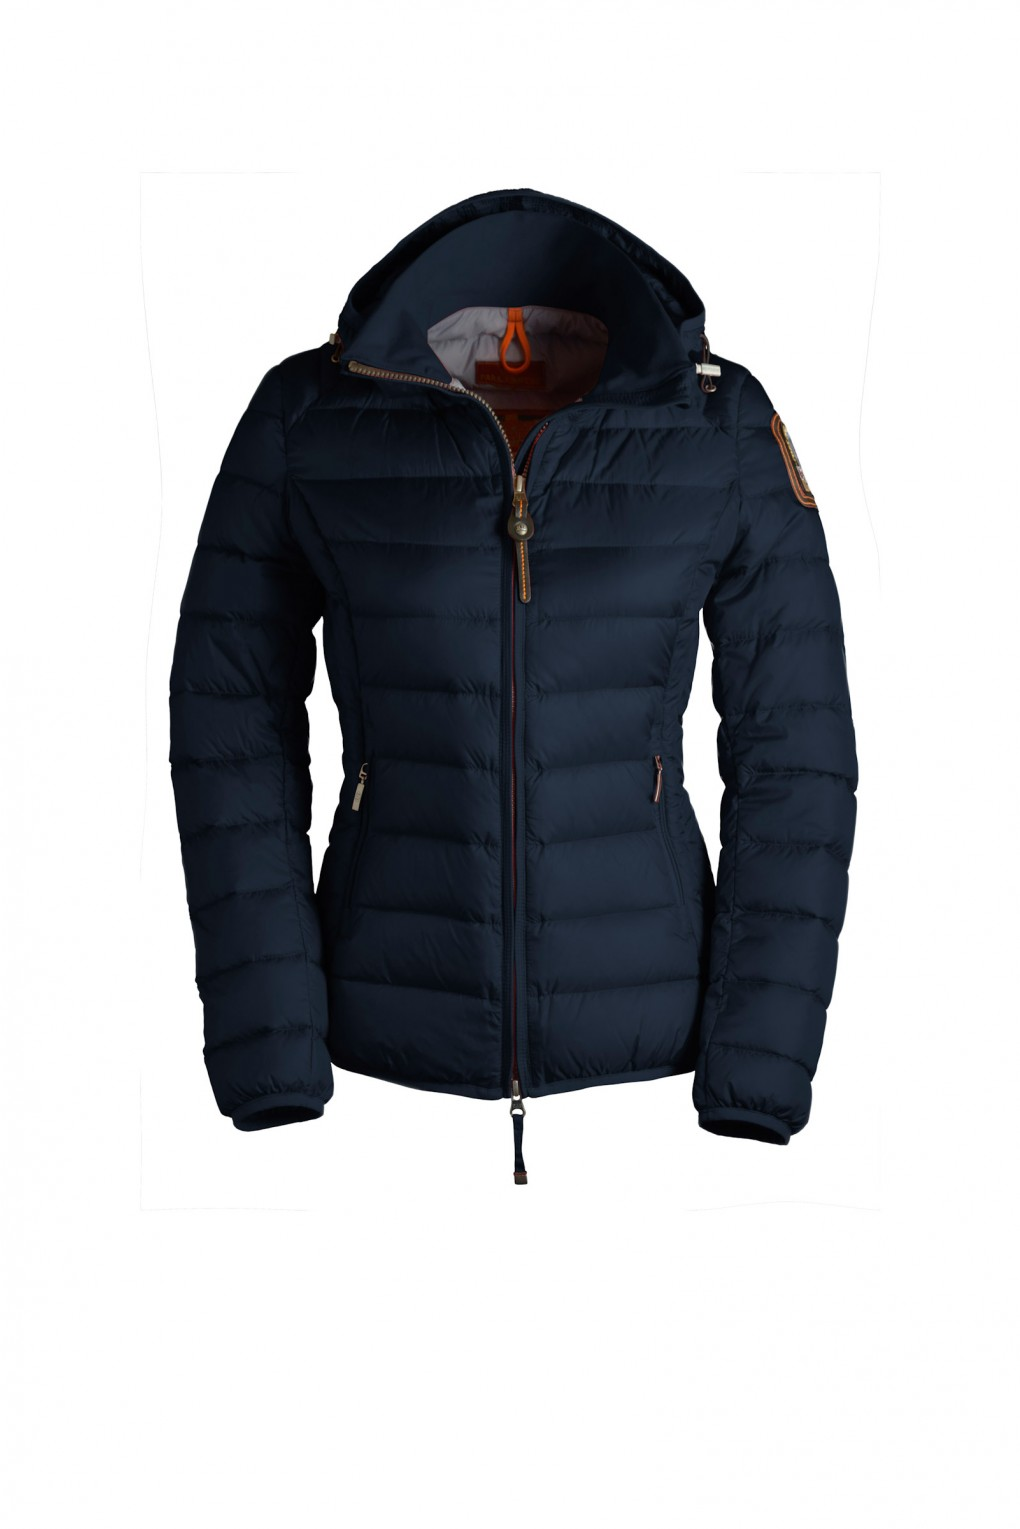 parajumpers JULIET6 woman outerwear Marine